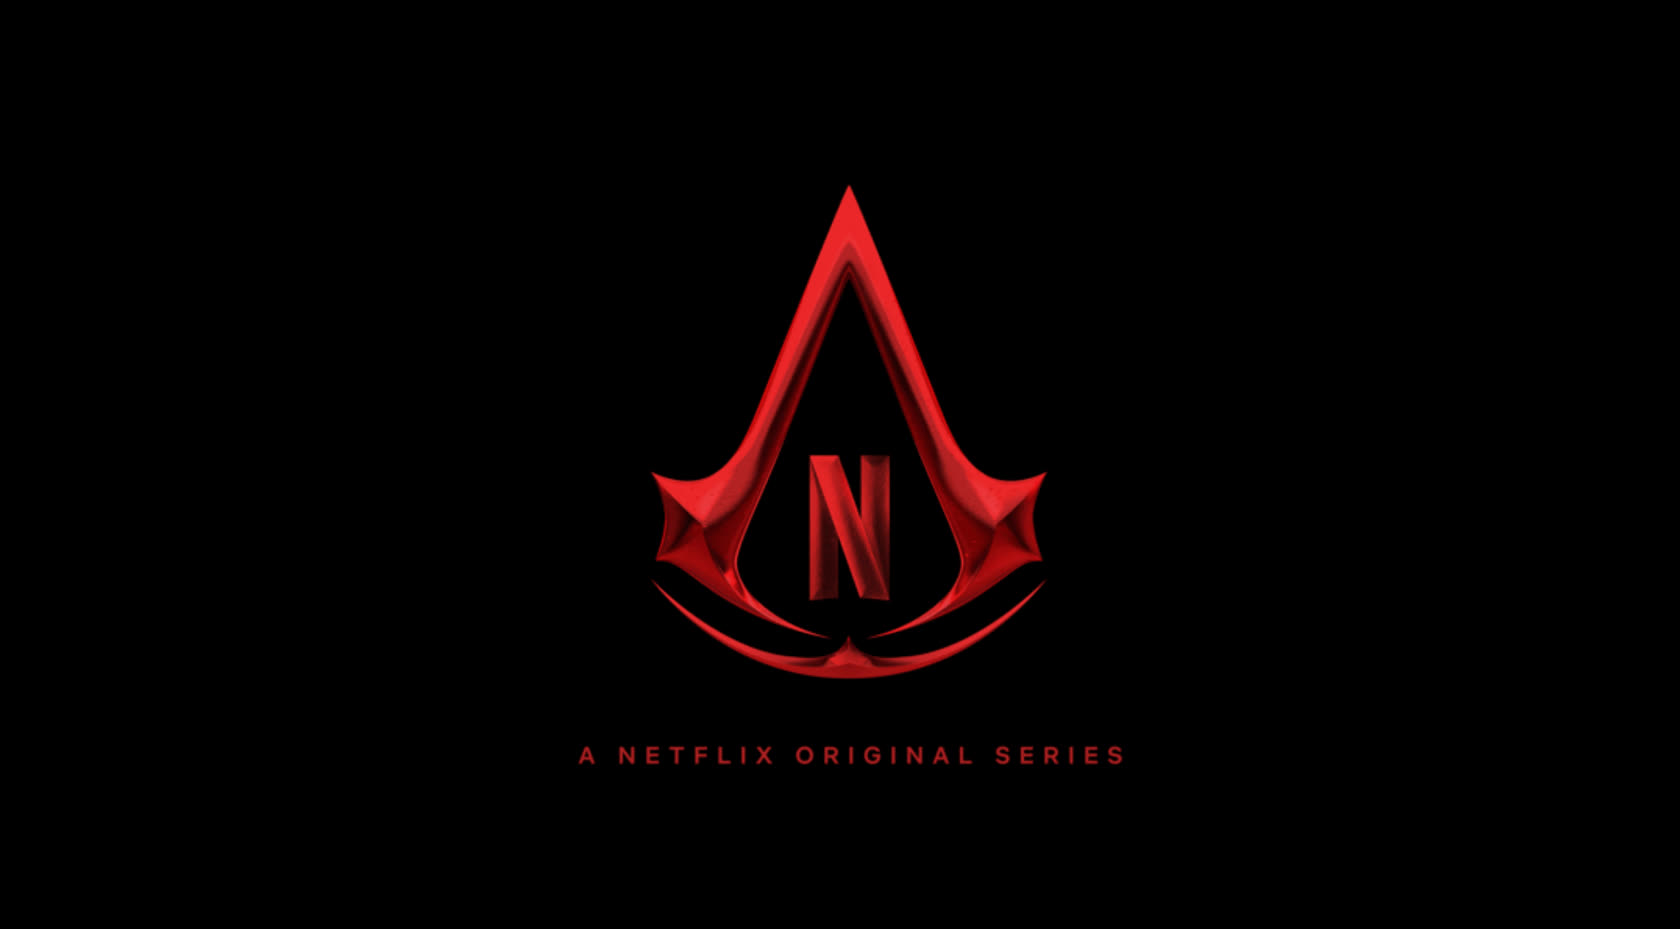 Netflix and Ubisoft are partnering up on a live-action Assassin's Creed series